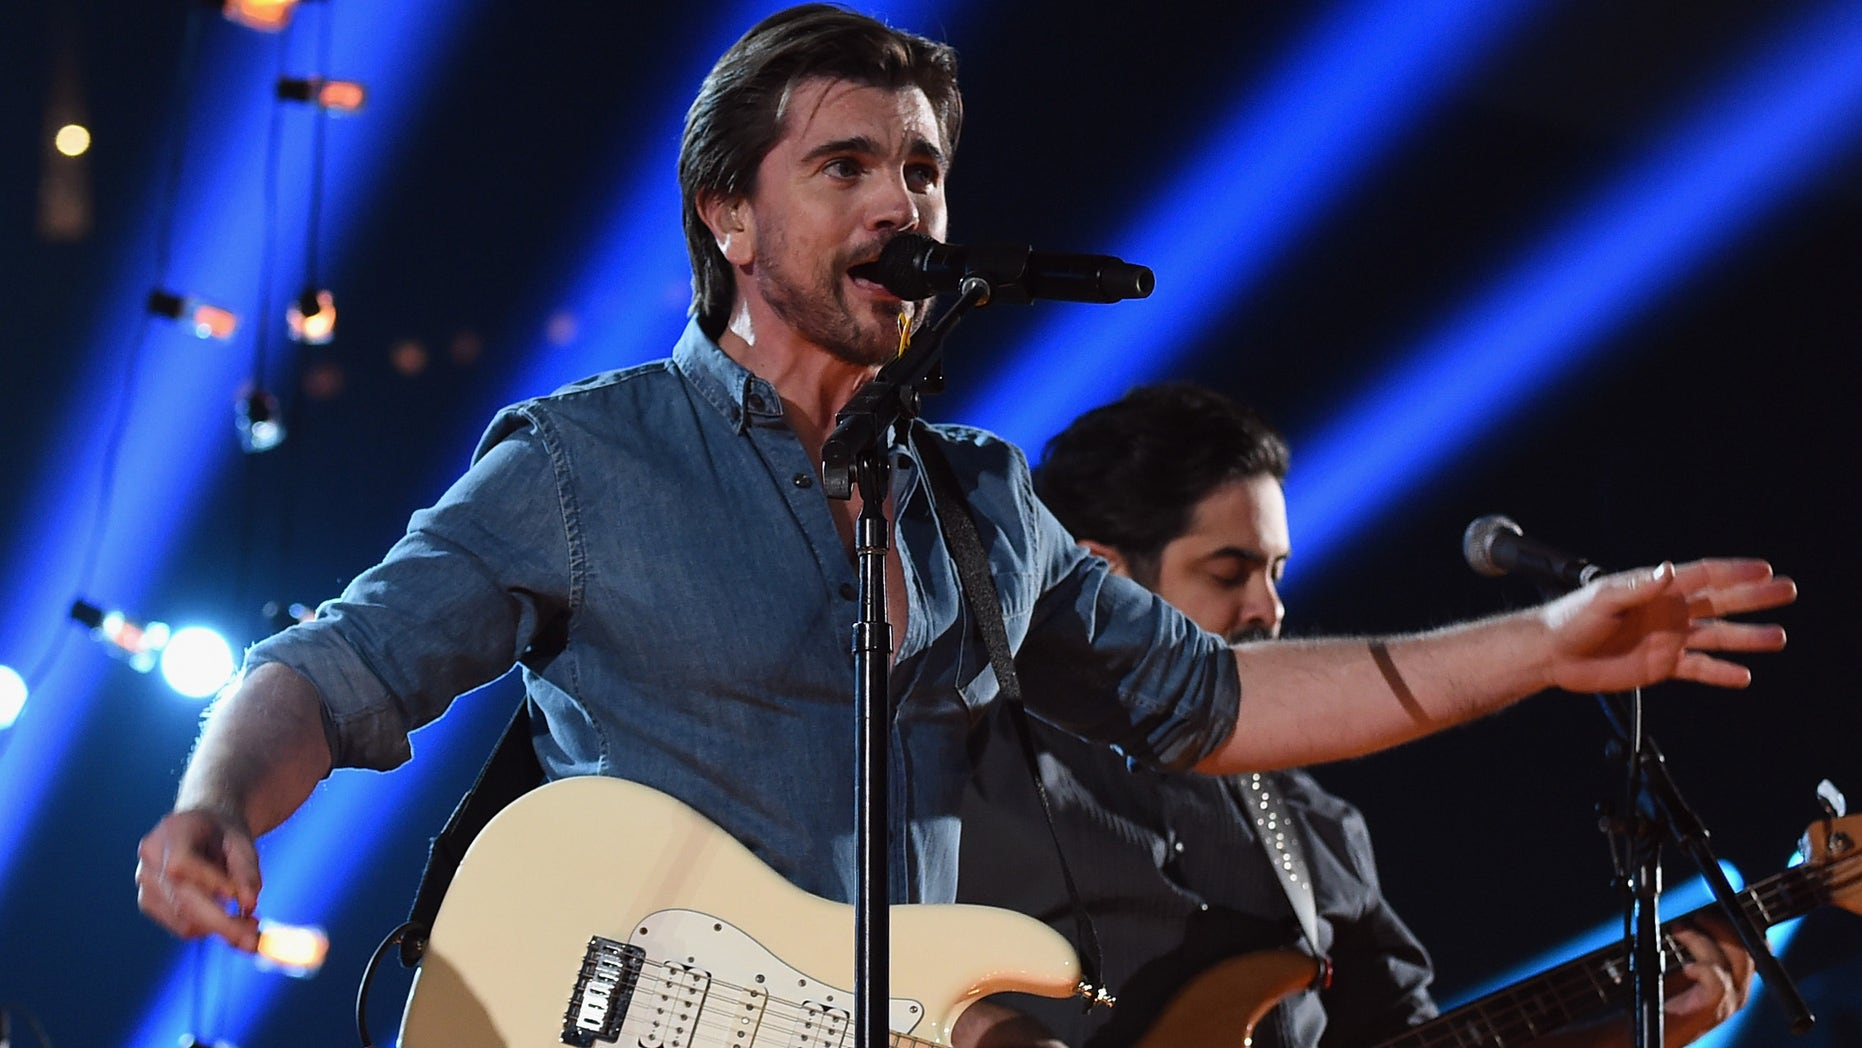 LOS ANGELES, CA - FEBRUARY 08:  Recording Artist Juanes performs onstage during The 57th Annual GRAMMY Awards at the STAPLES Center on February 8, 2015 in Los Angeles, California.  (Photo by Larry Busacca/Getty Images for NARAS)